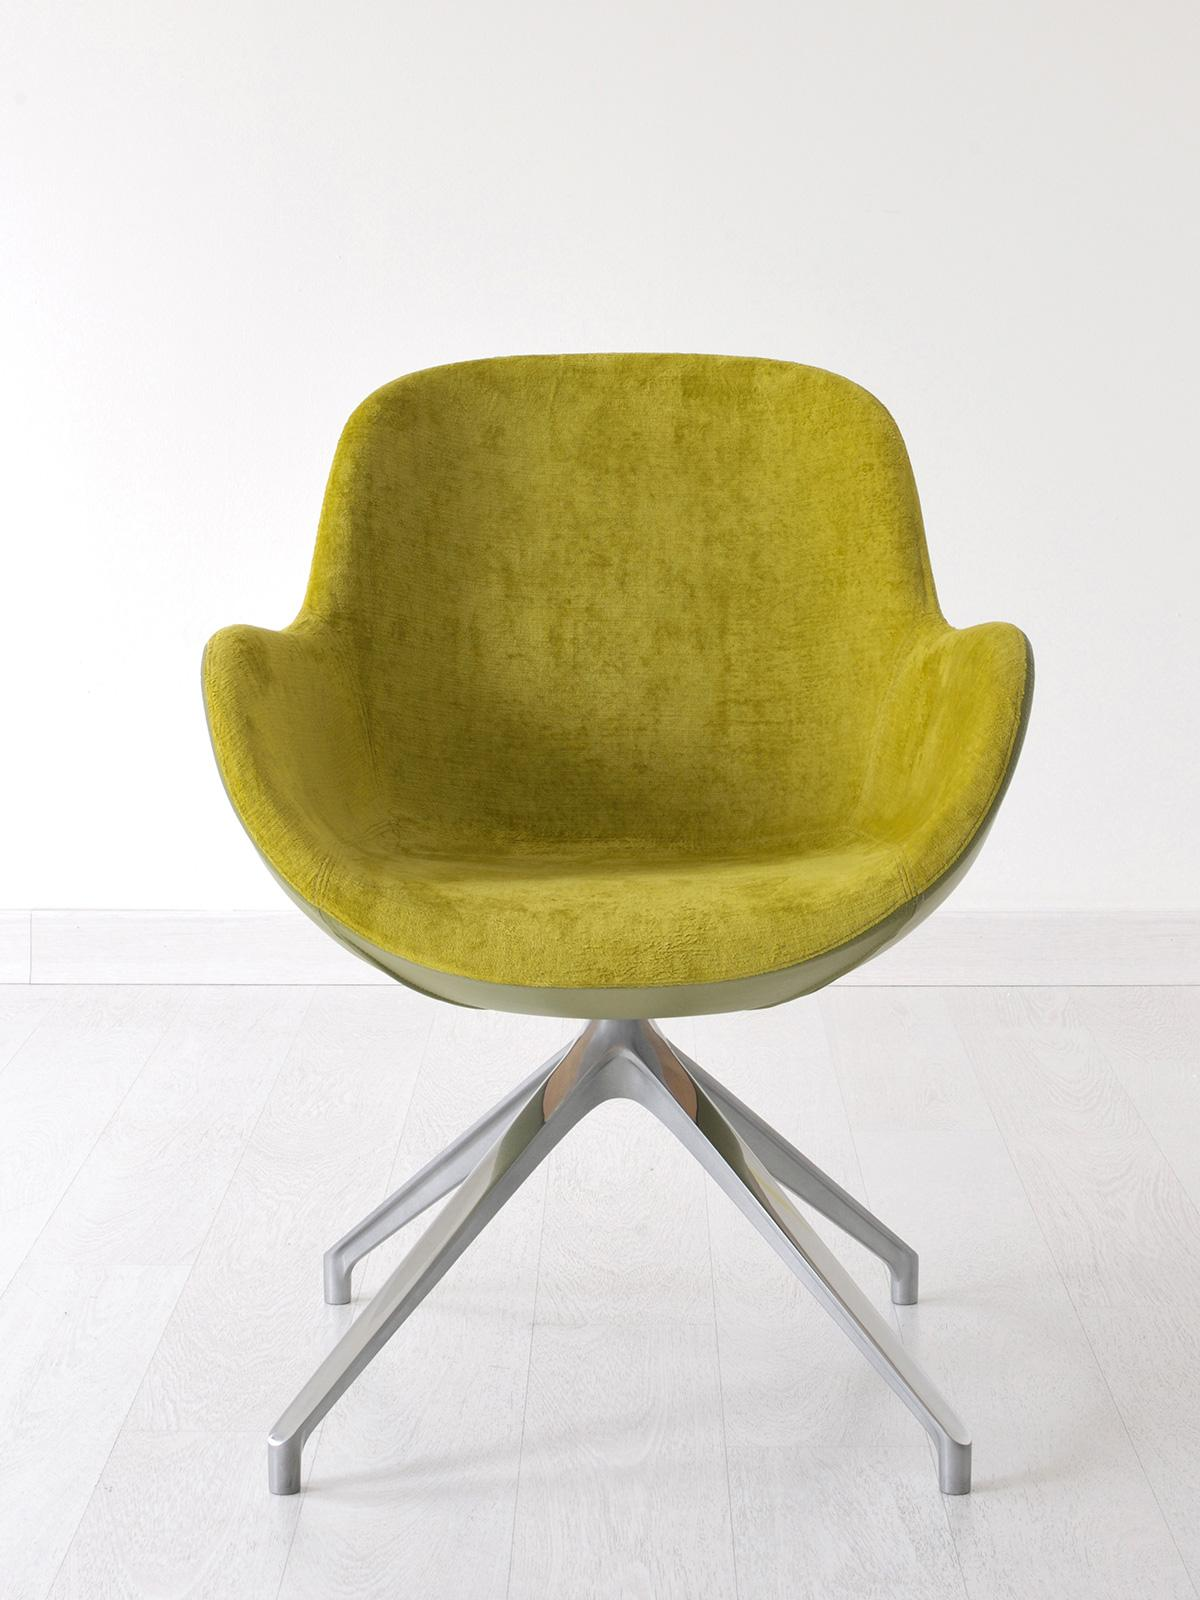 Swivel armchair with shell shape. Matching velvet and leather for luxurious covering. Metal 4-feet base. Design by Edi & Paolo Ciani. Free shipment.